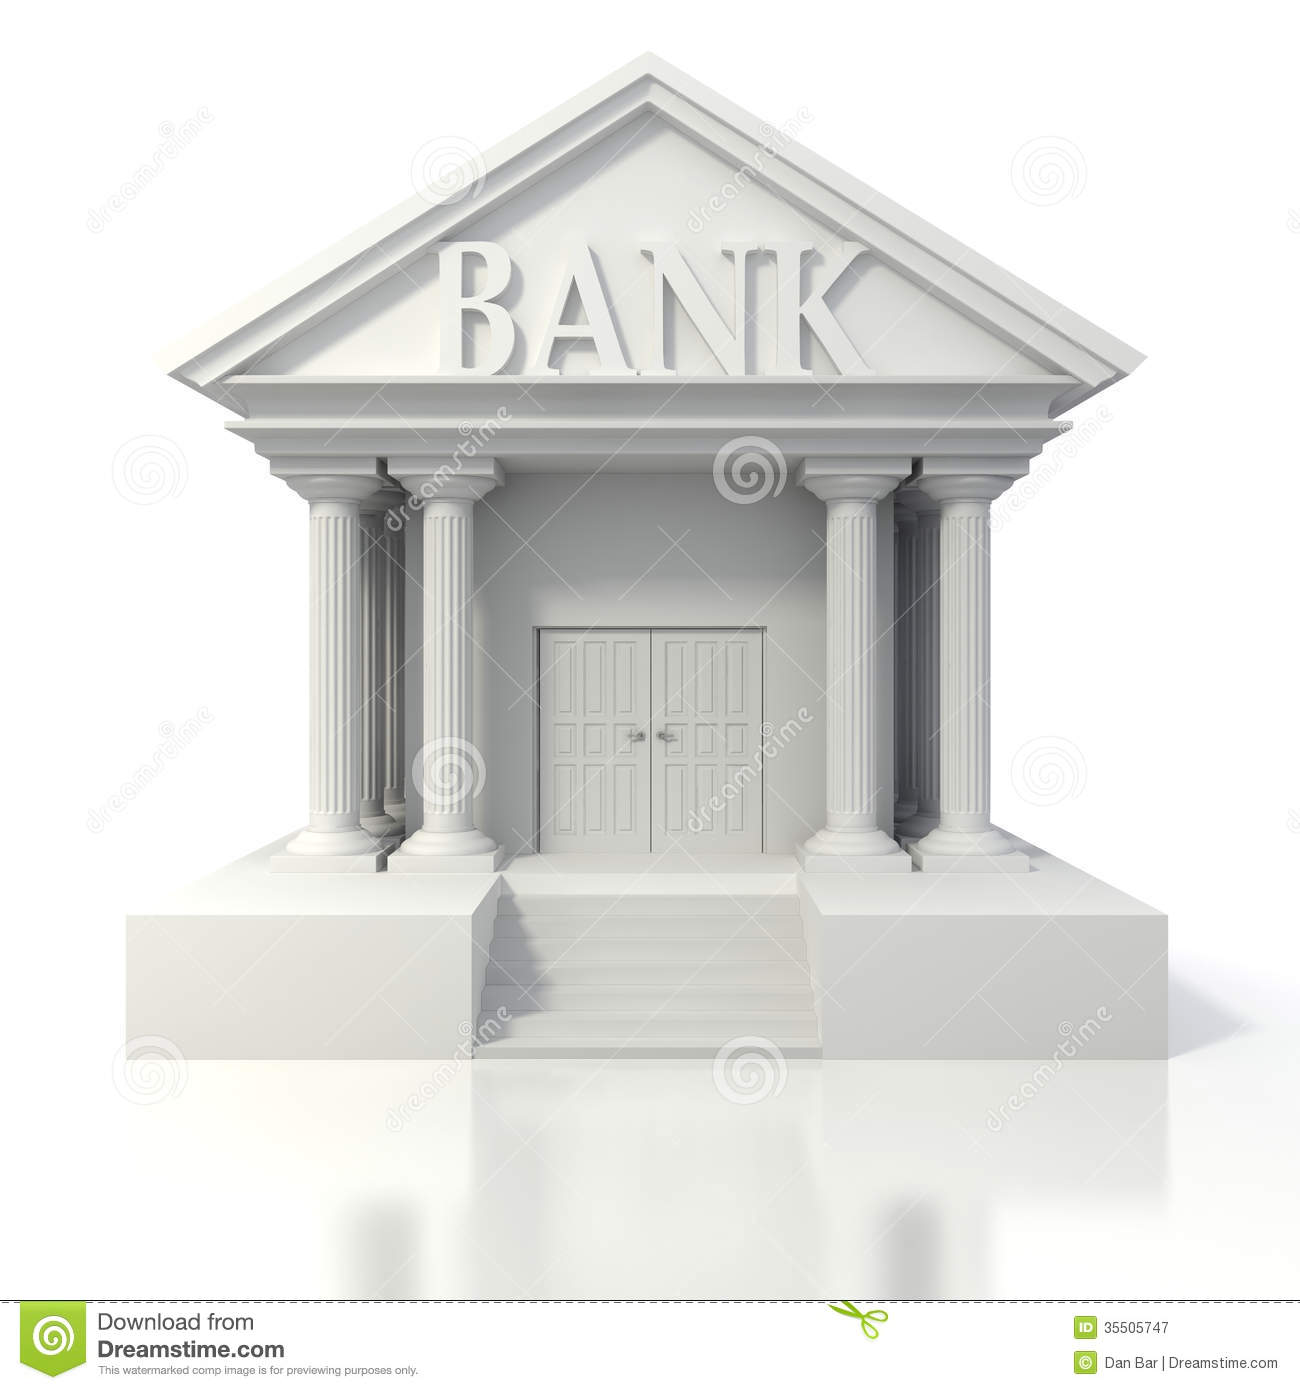 bank building 3d icon royalty free stock image. Black Bedroom Furniture Sets. Home Design Ideas